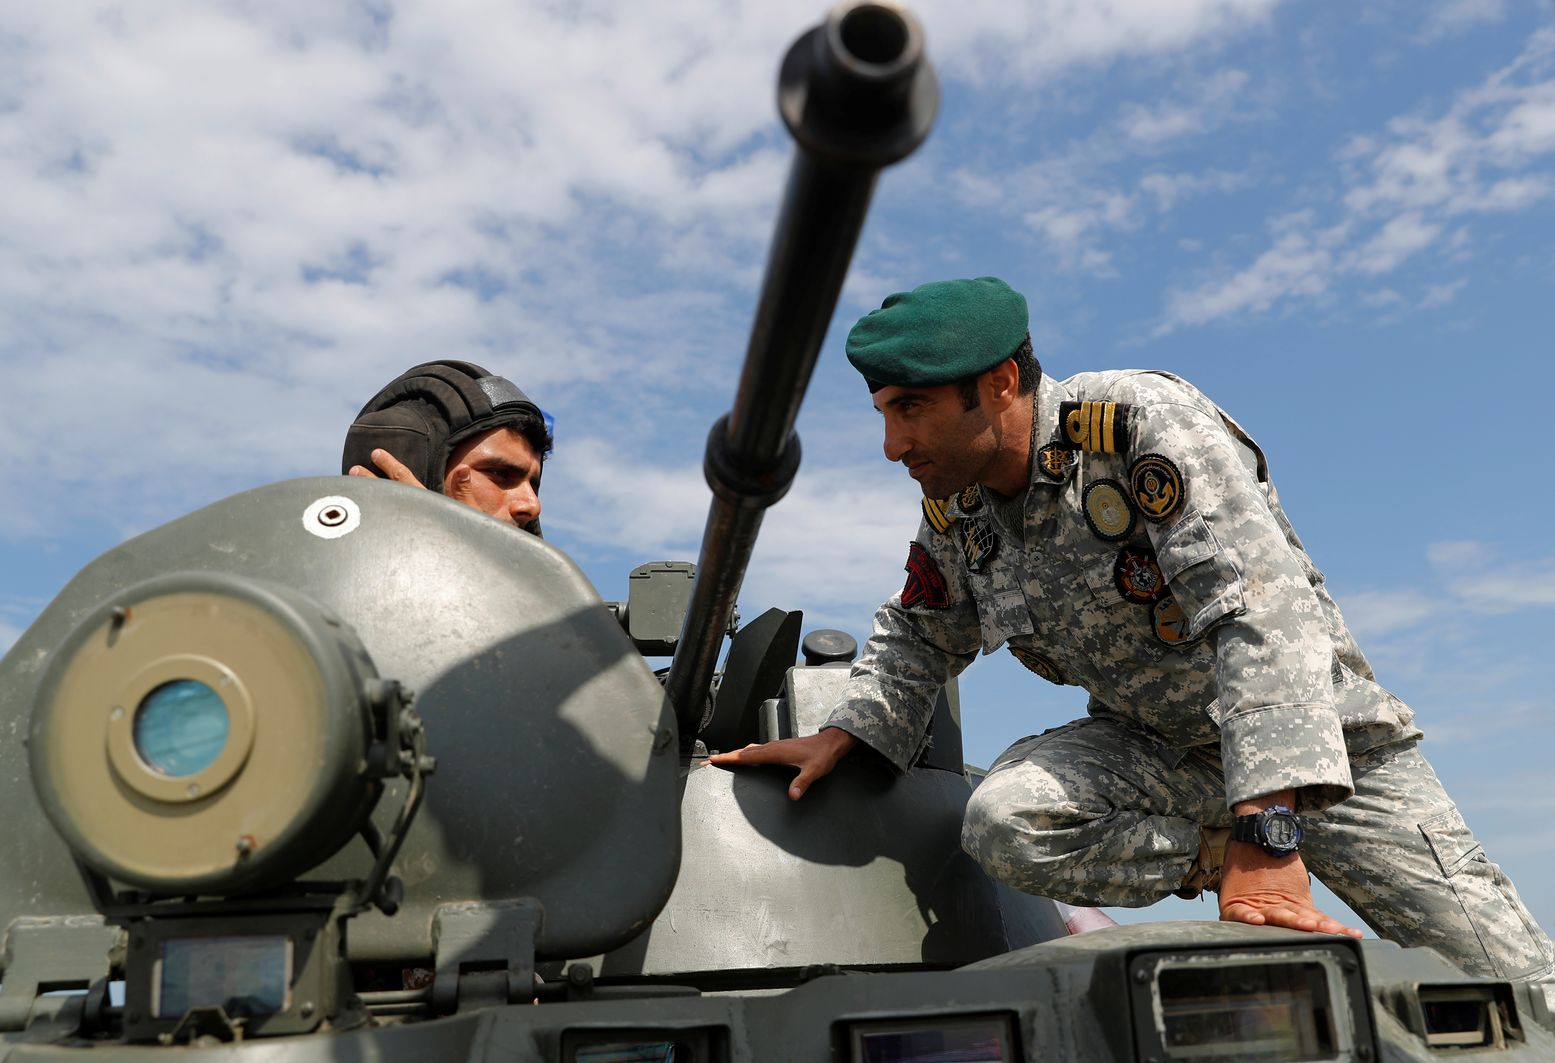 Iran's Islamic Revolutionary Guard Corps Are Some of the Toughest